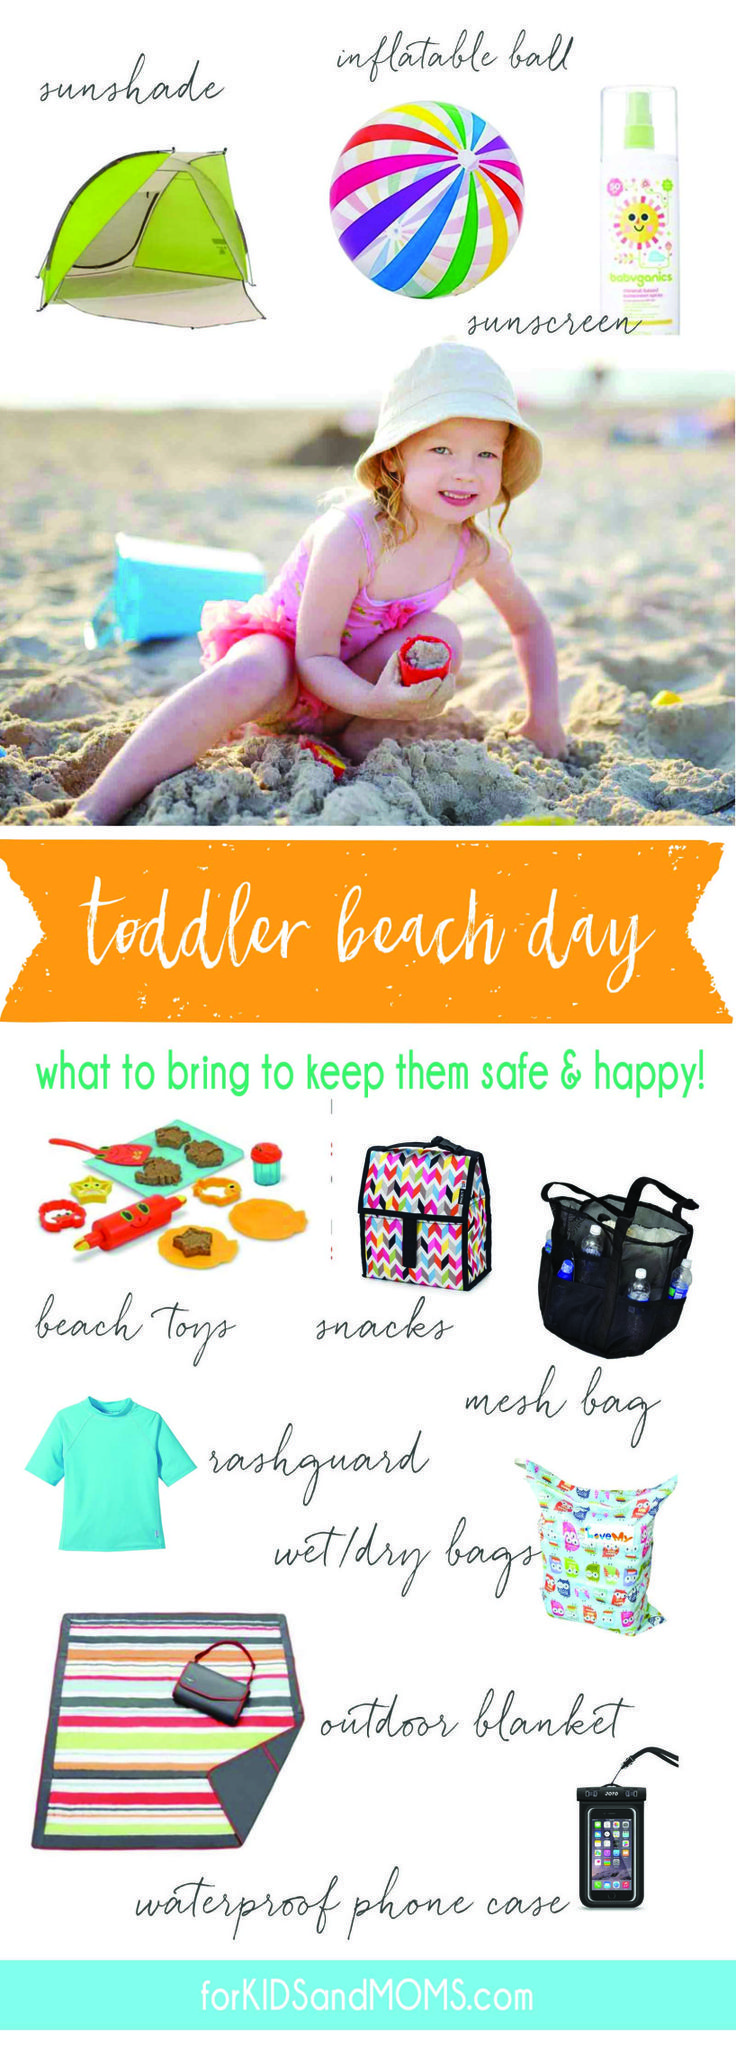 What To Bring The Beach Checklist For Vacationing With A Toddler Via Forkidsandmoms